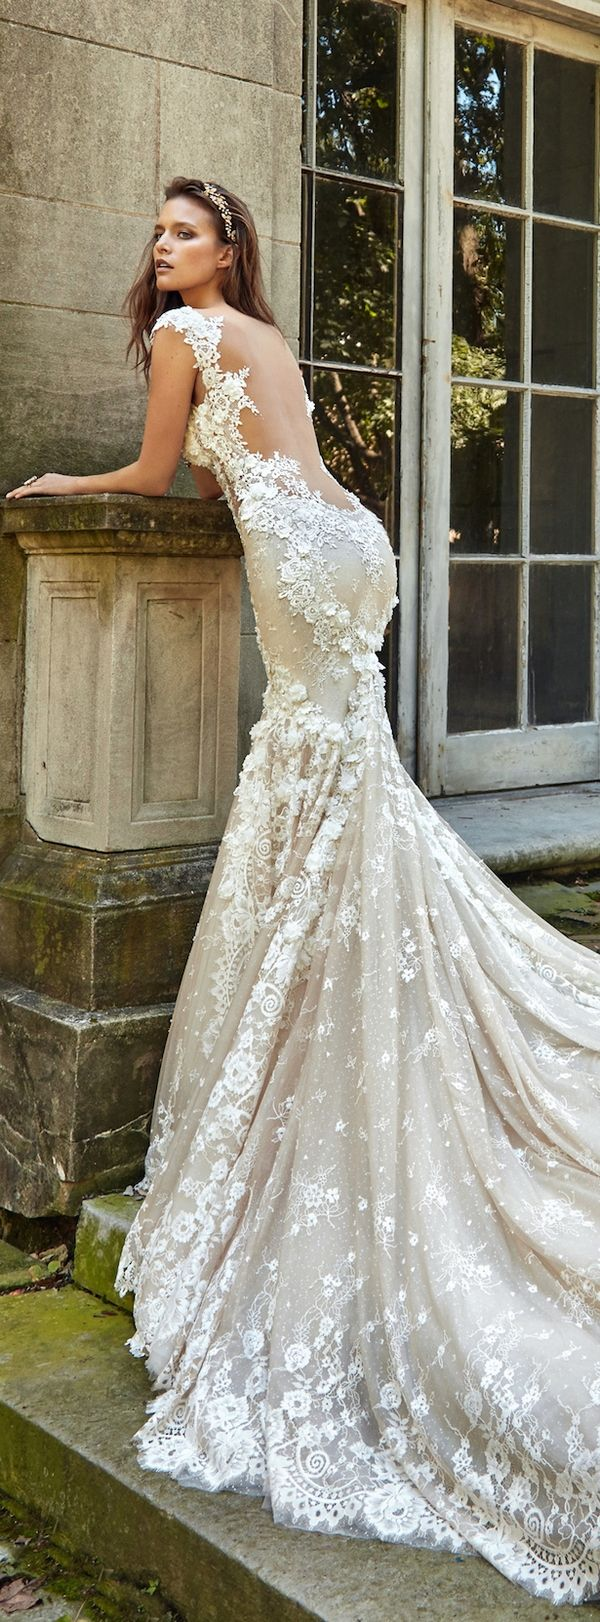 Galia Lahav 2017 Wedding Dresses / http://www.himisspuff.com/galia-lahav-fall-2017-wedding-dresses/2/